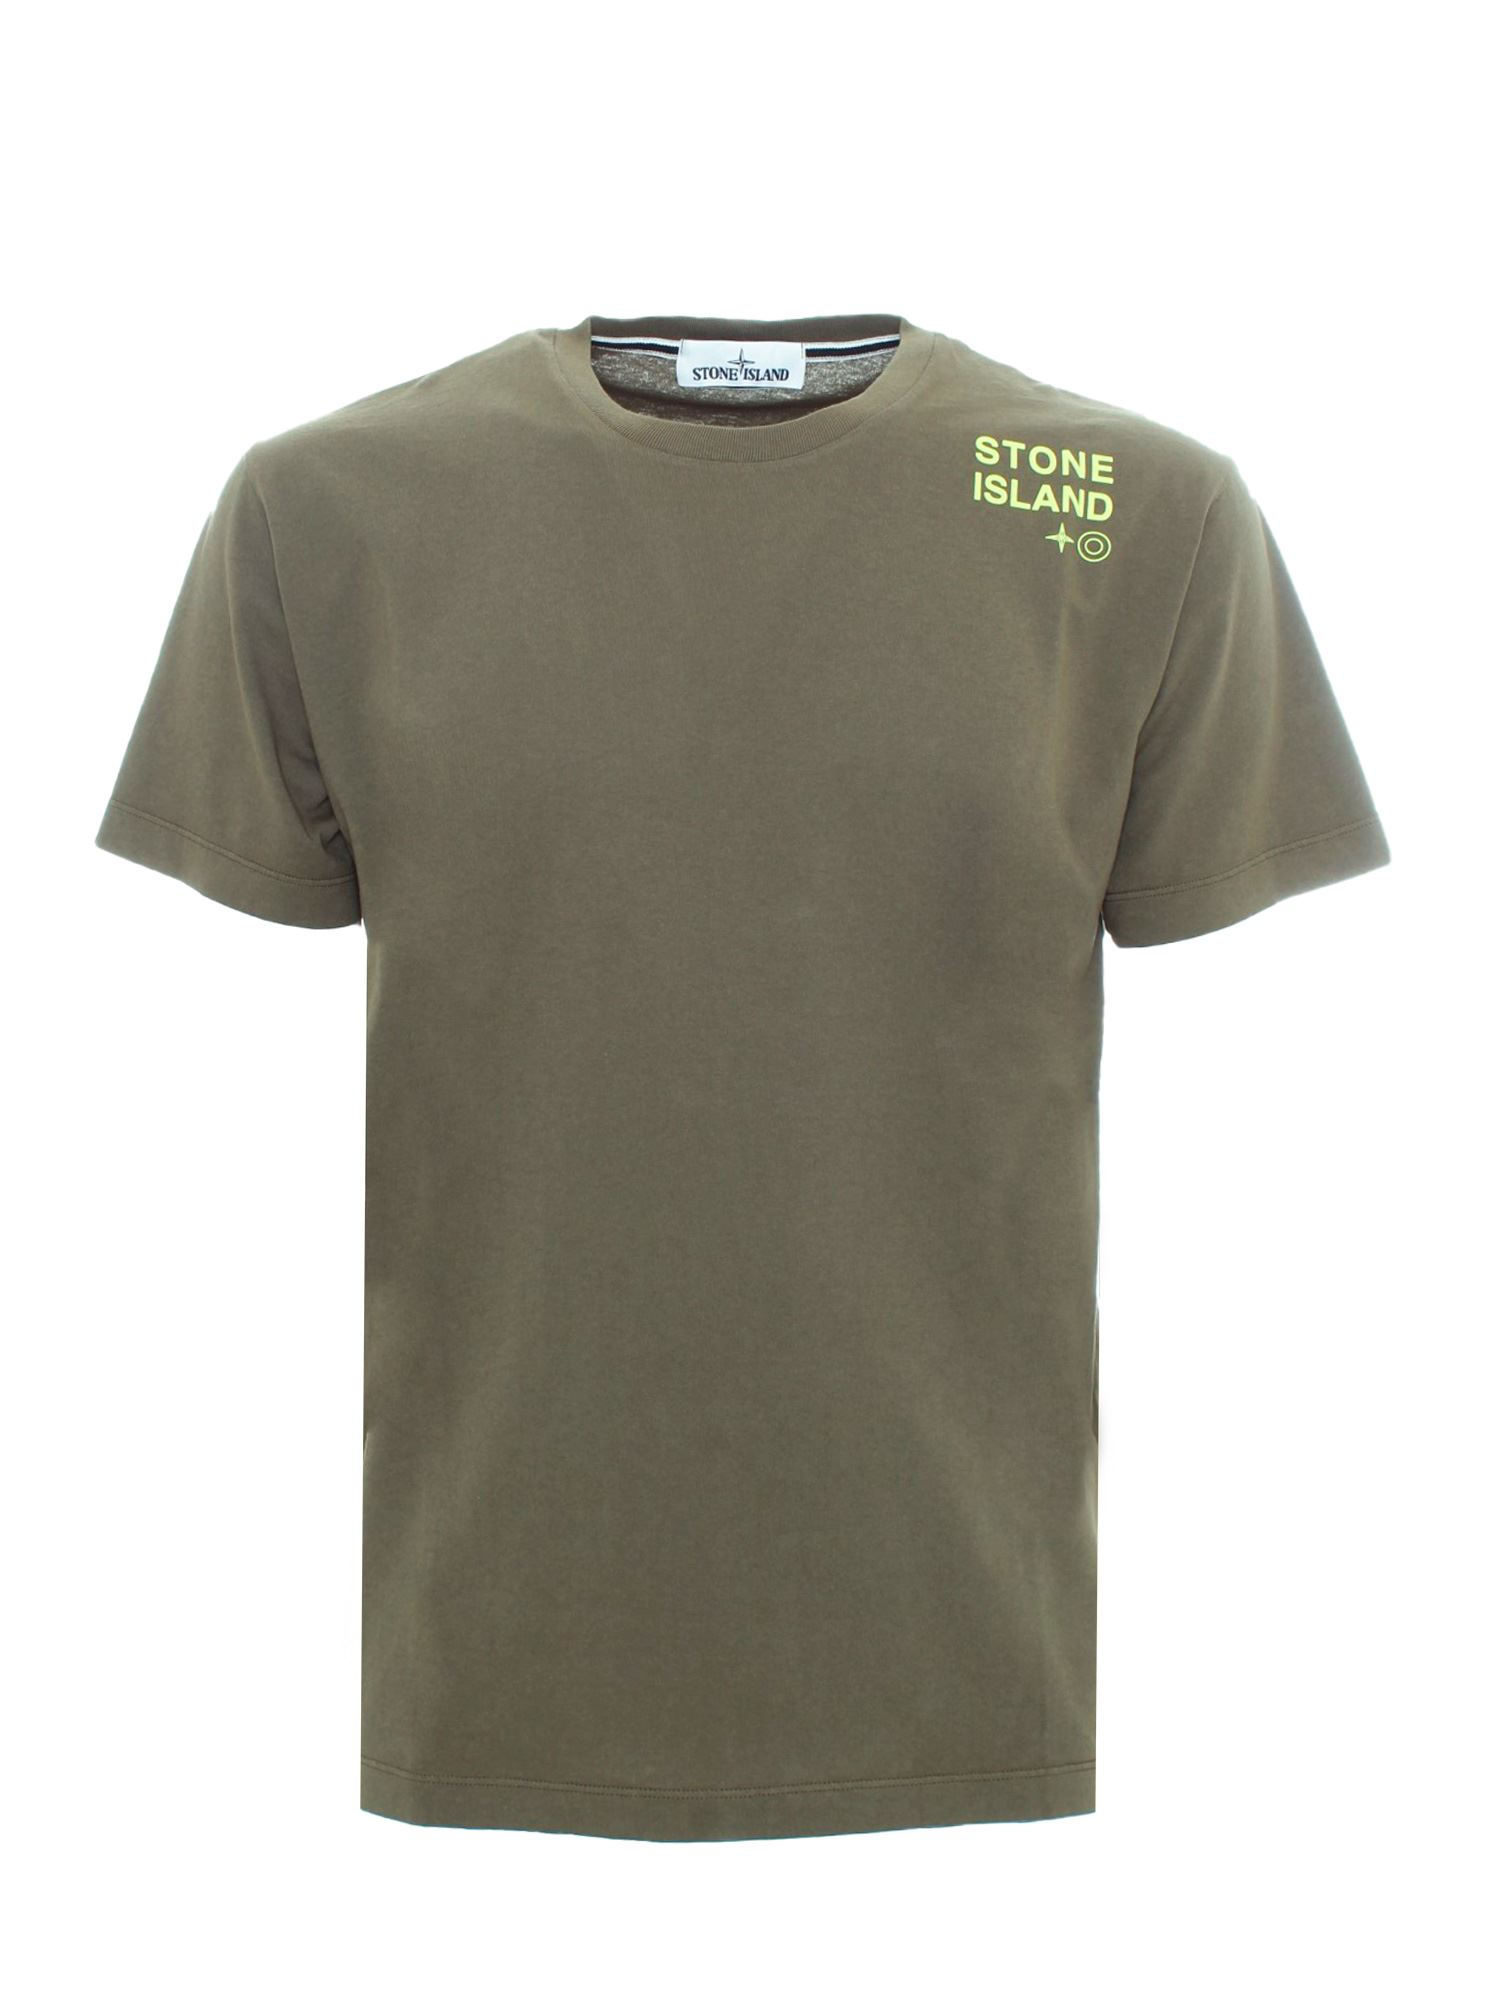 Stone Island LOGO LETTERING T-SHIRT IN MILITARY GREEN